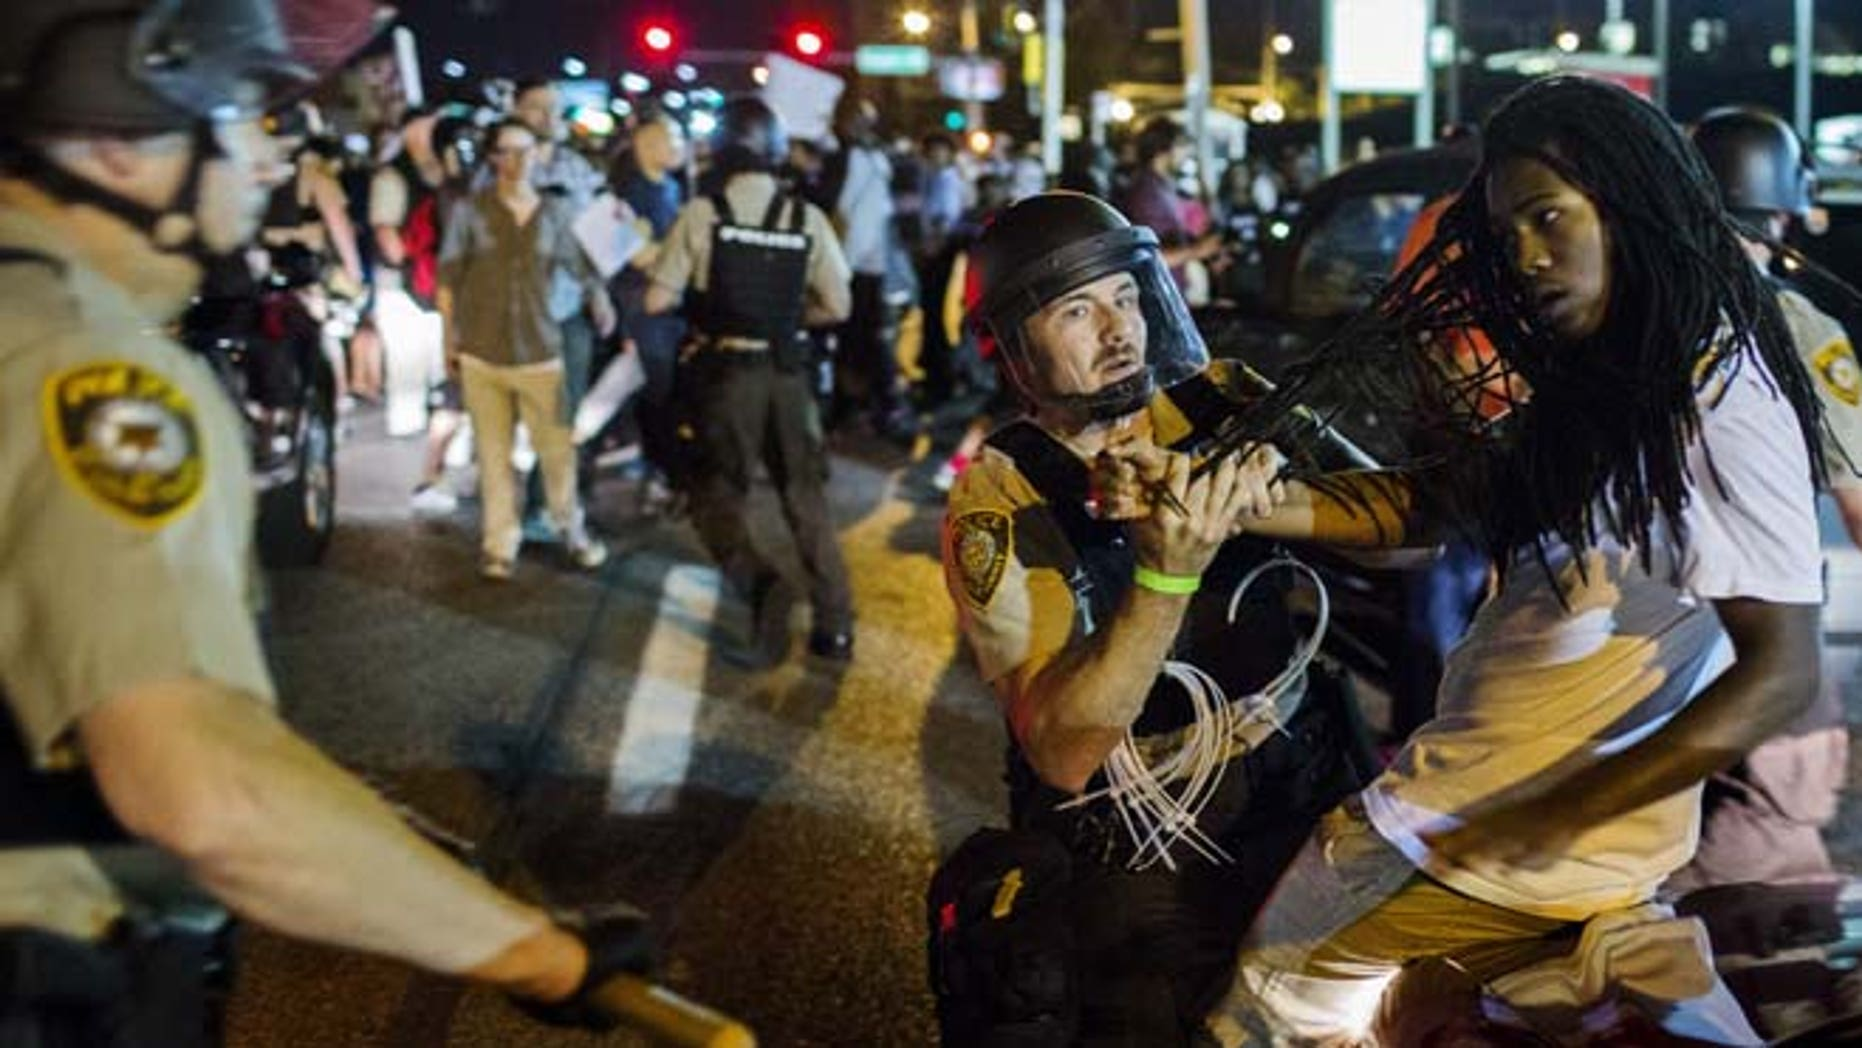 Aug. 10, 2015: St Louis County police officers hold an anti-police demonstrator in Ferguson, Missouri.